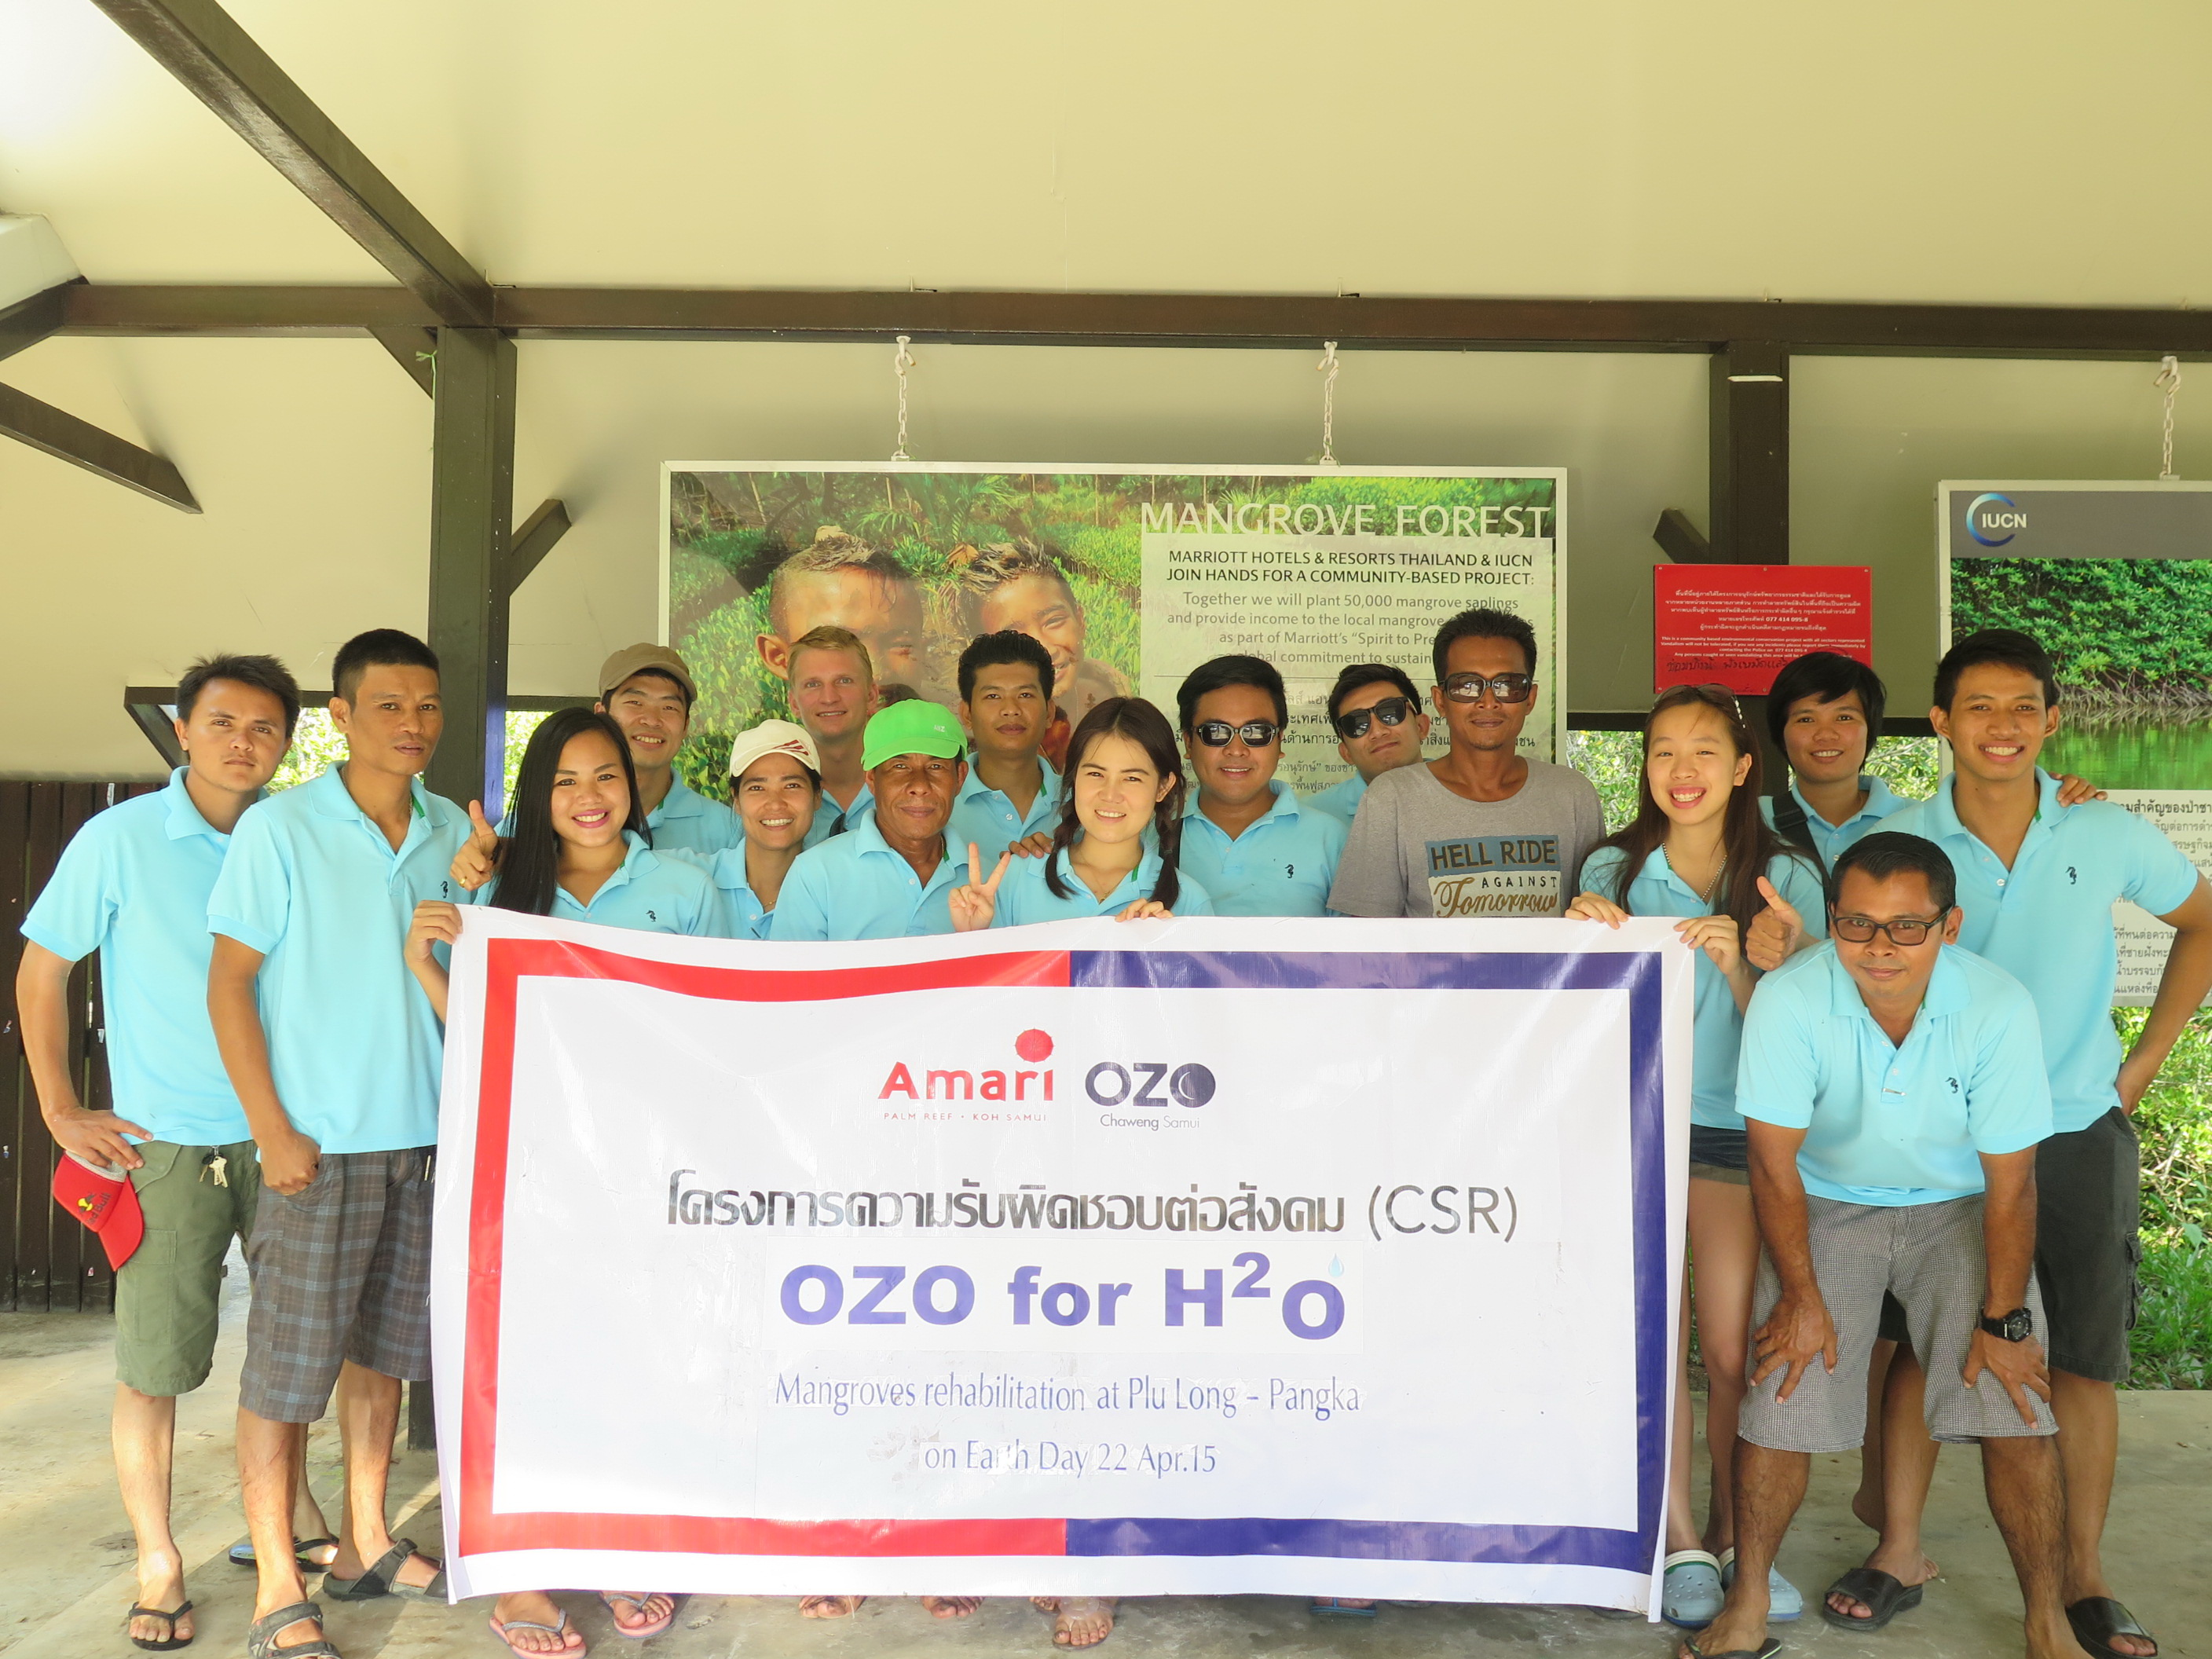 OZO Chaweng  Celebrates Earth Day with Mangroves Rehabilitation Project | Samui Times